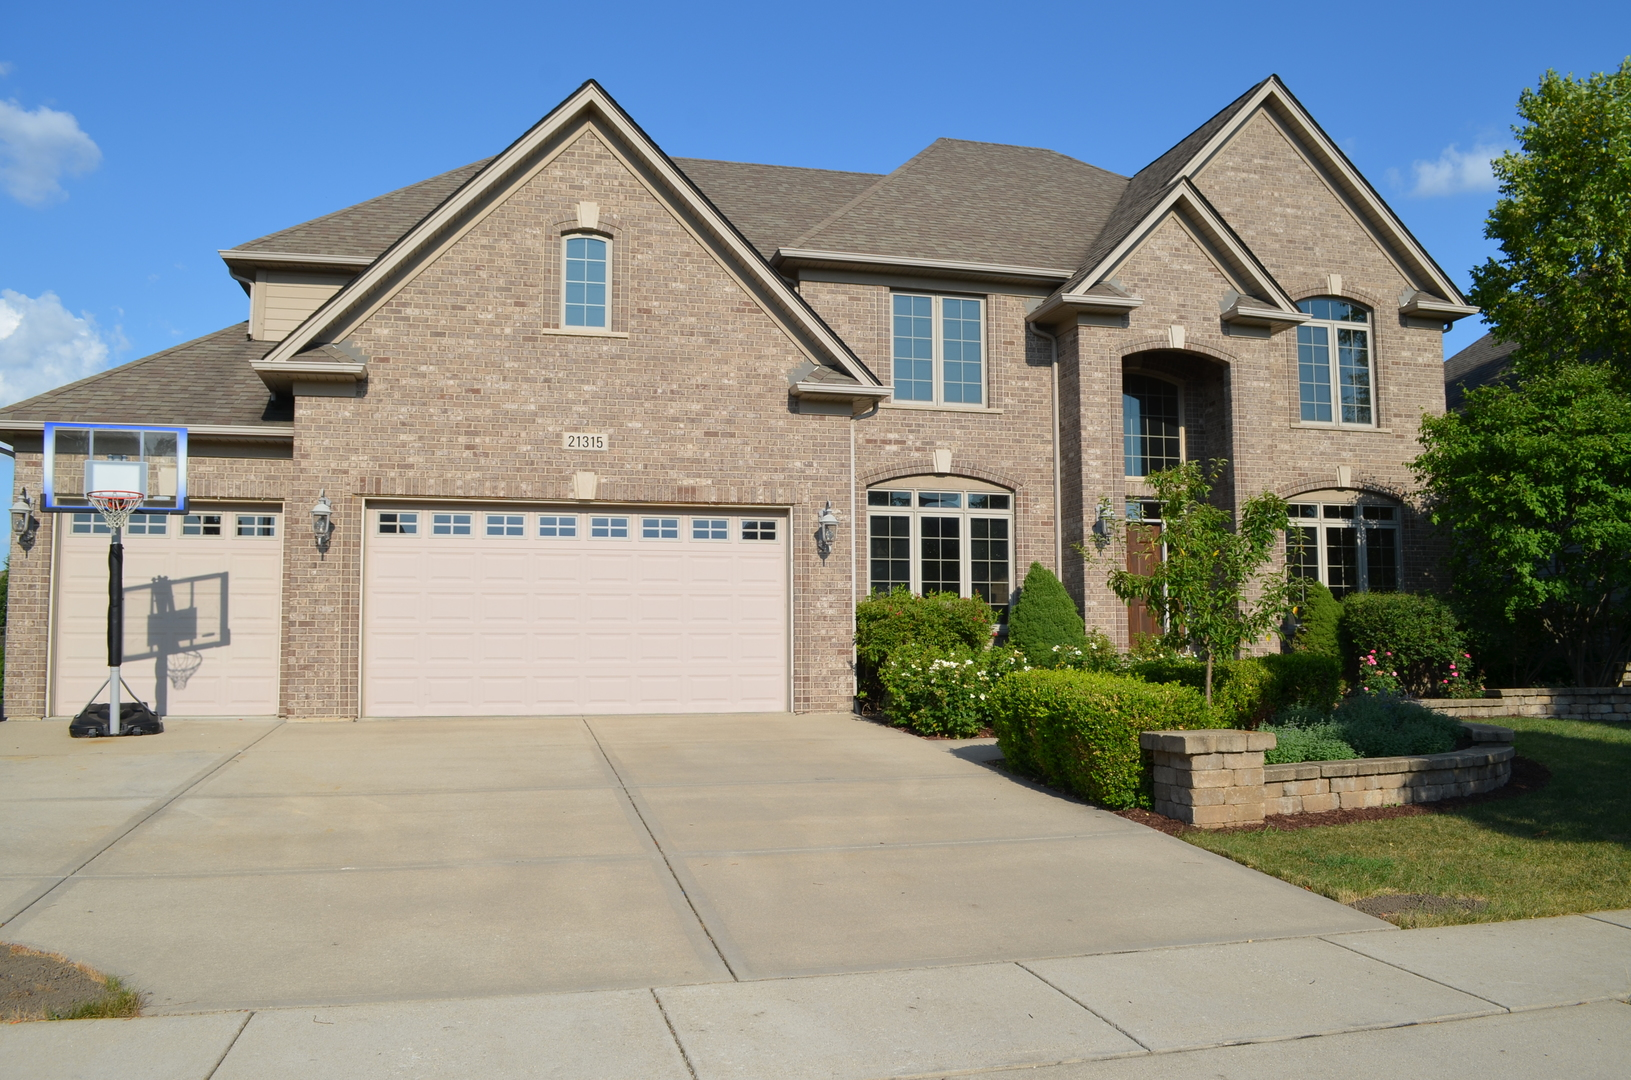 21315 South Redwood Lane, Shorewood, Illinois